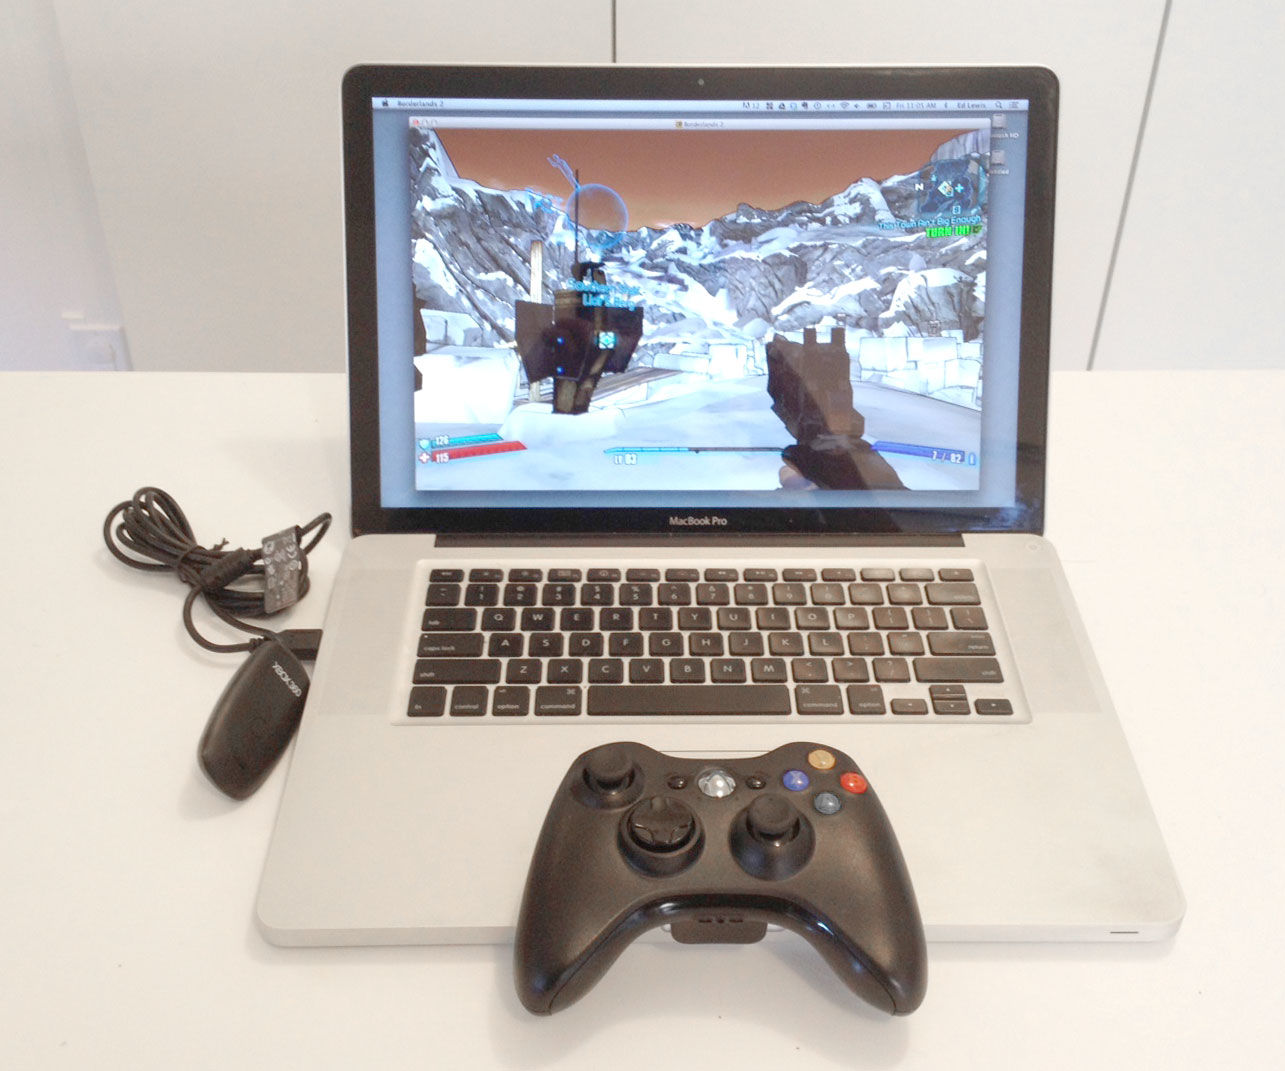 """29 thoughts on """"How to Use an Xbox One Controller with a Mac"""""""